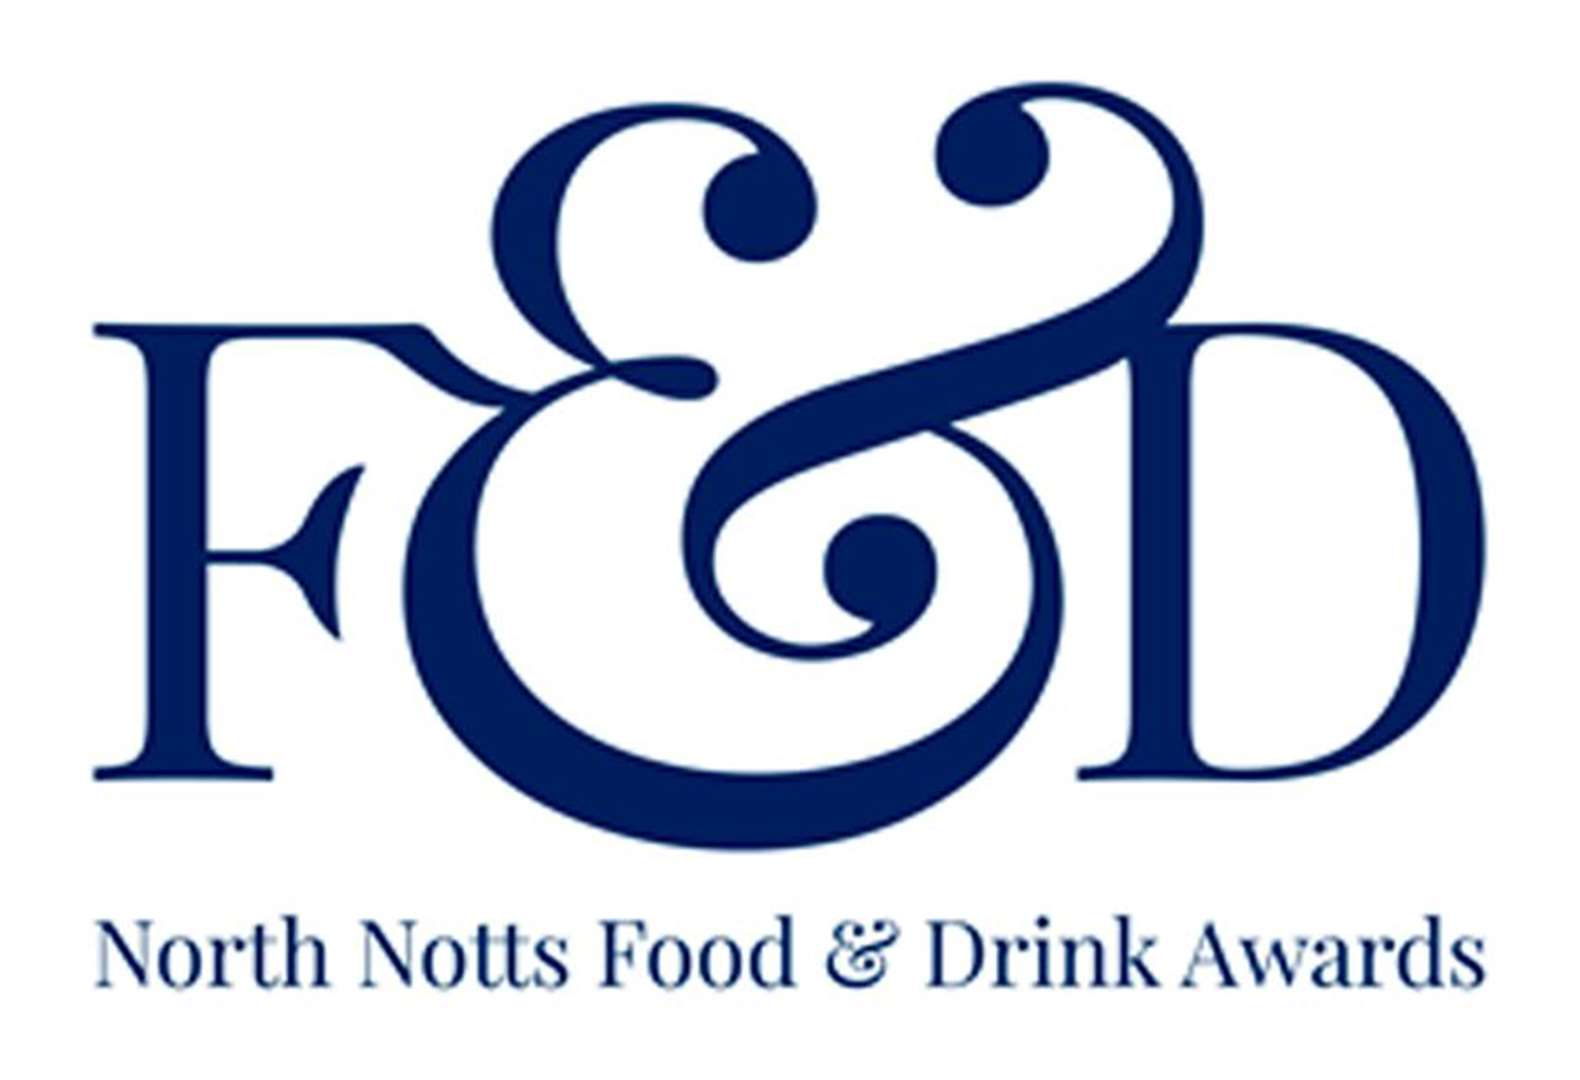 Food and Drinks Awards coming soon